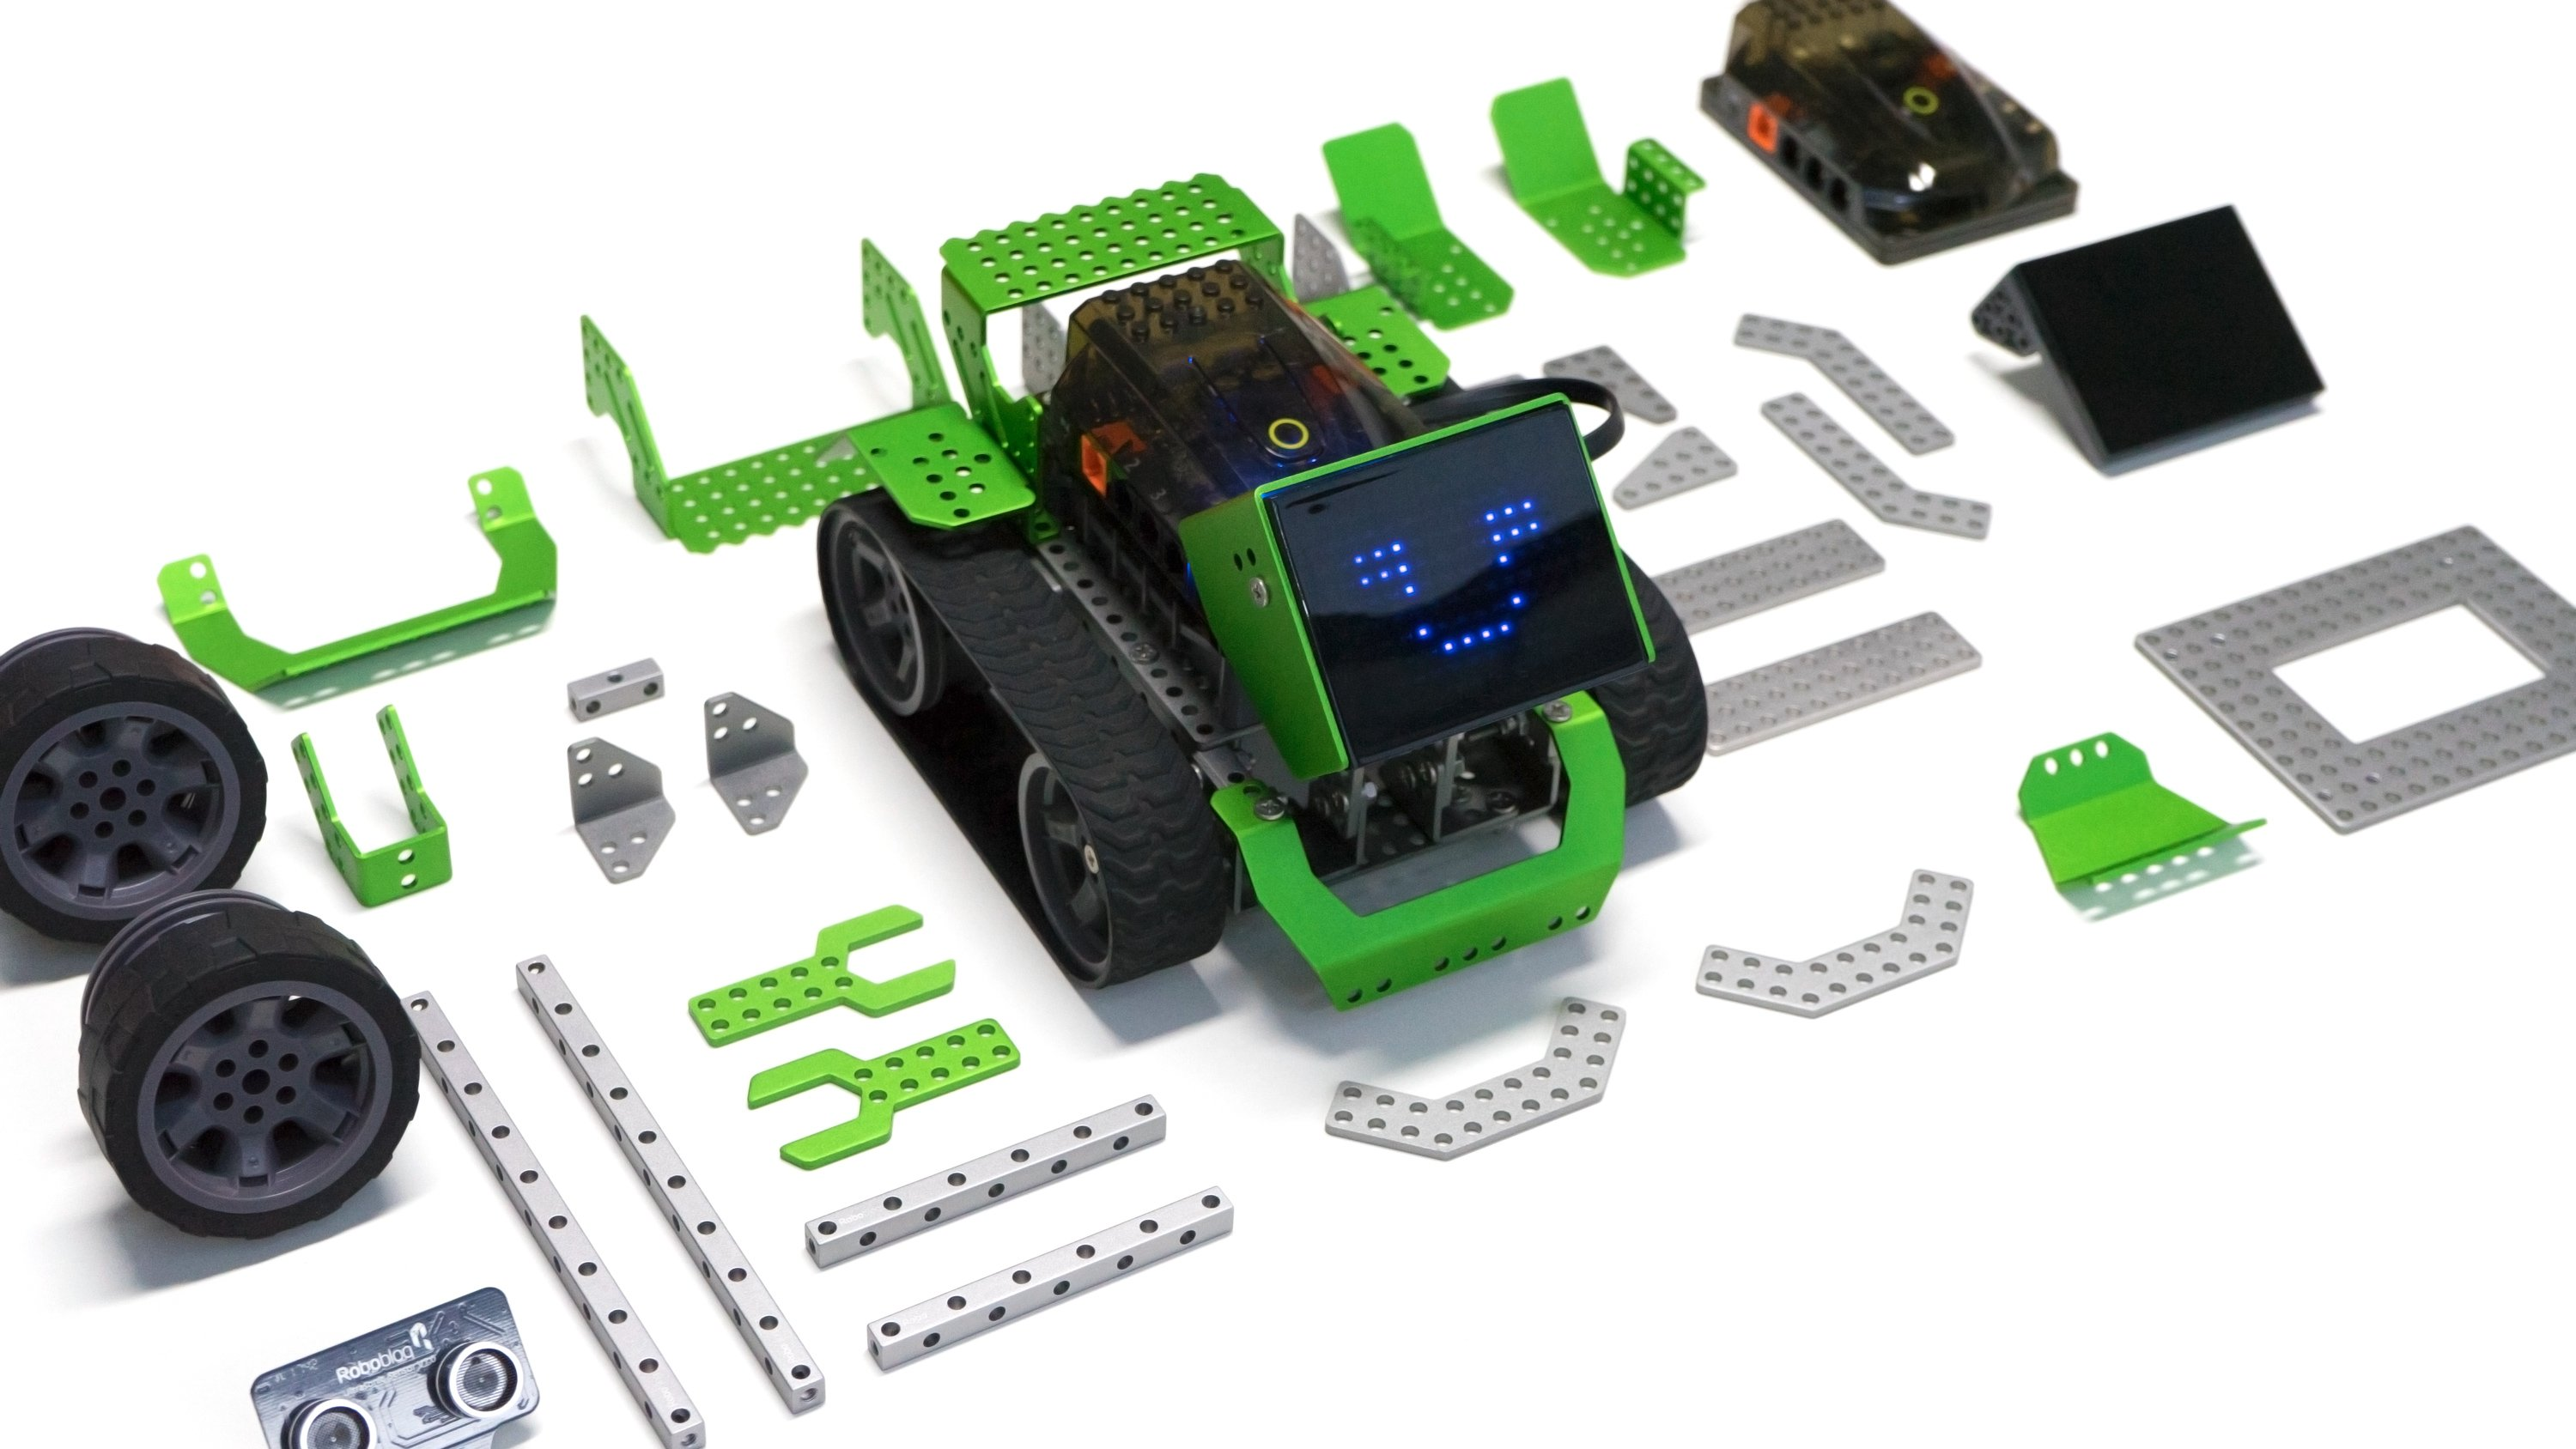 Robobloq educational robots to learn STEM